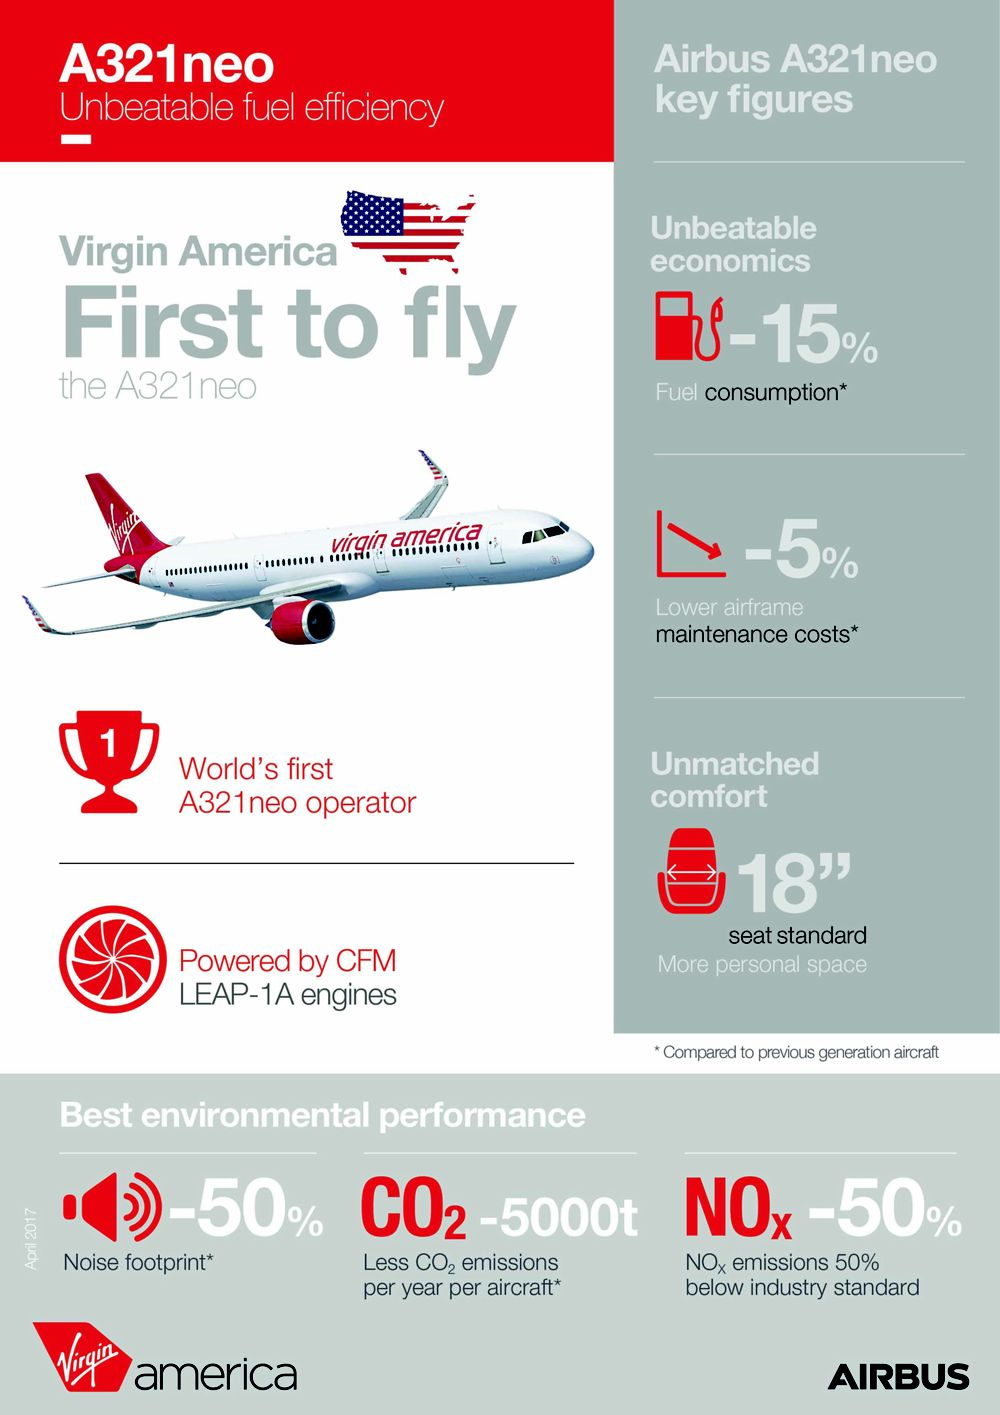 20170163_A321neo, Virgin America A321neo Infographic April 2017